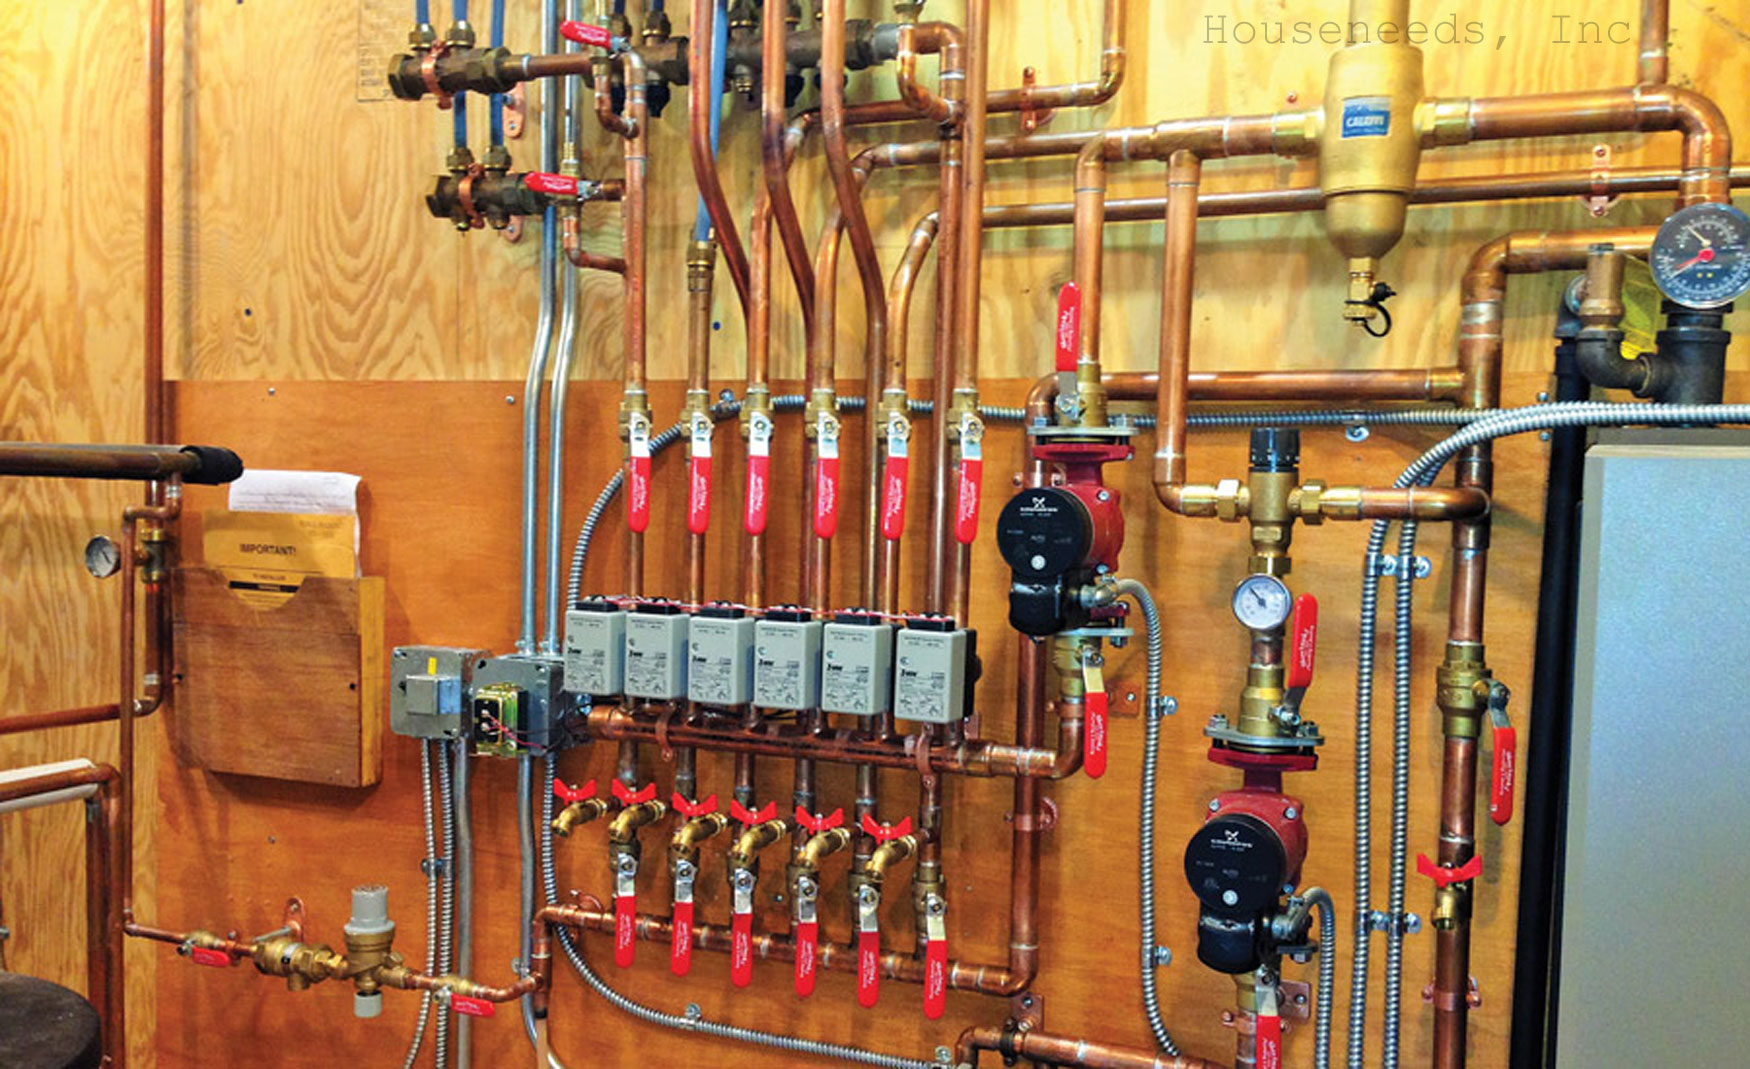 Hydronic heating system boiler with Zone Valves